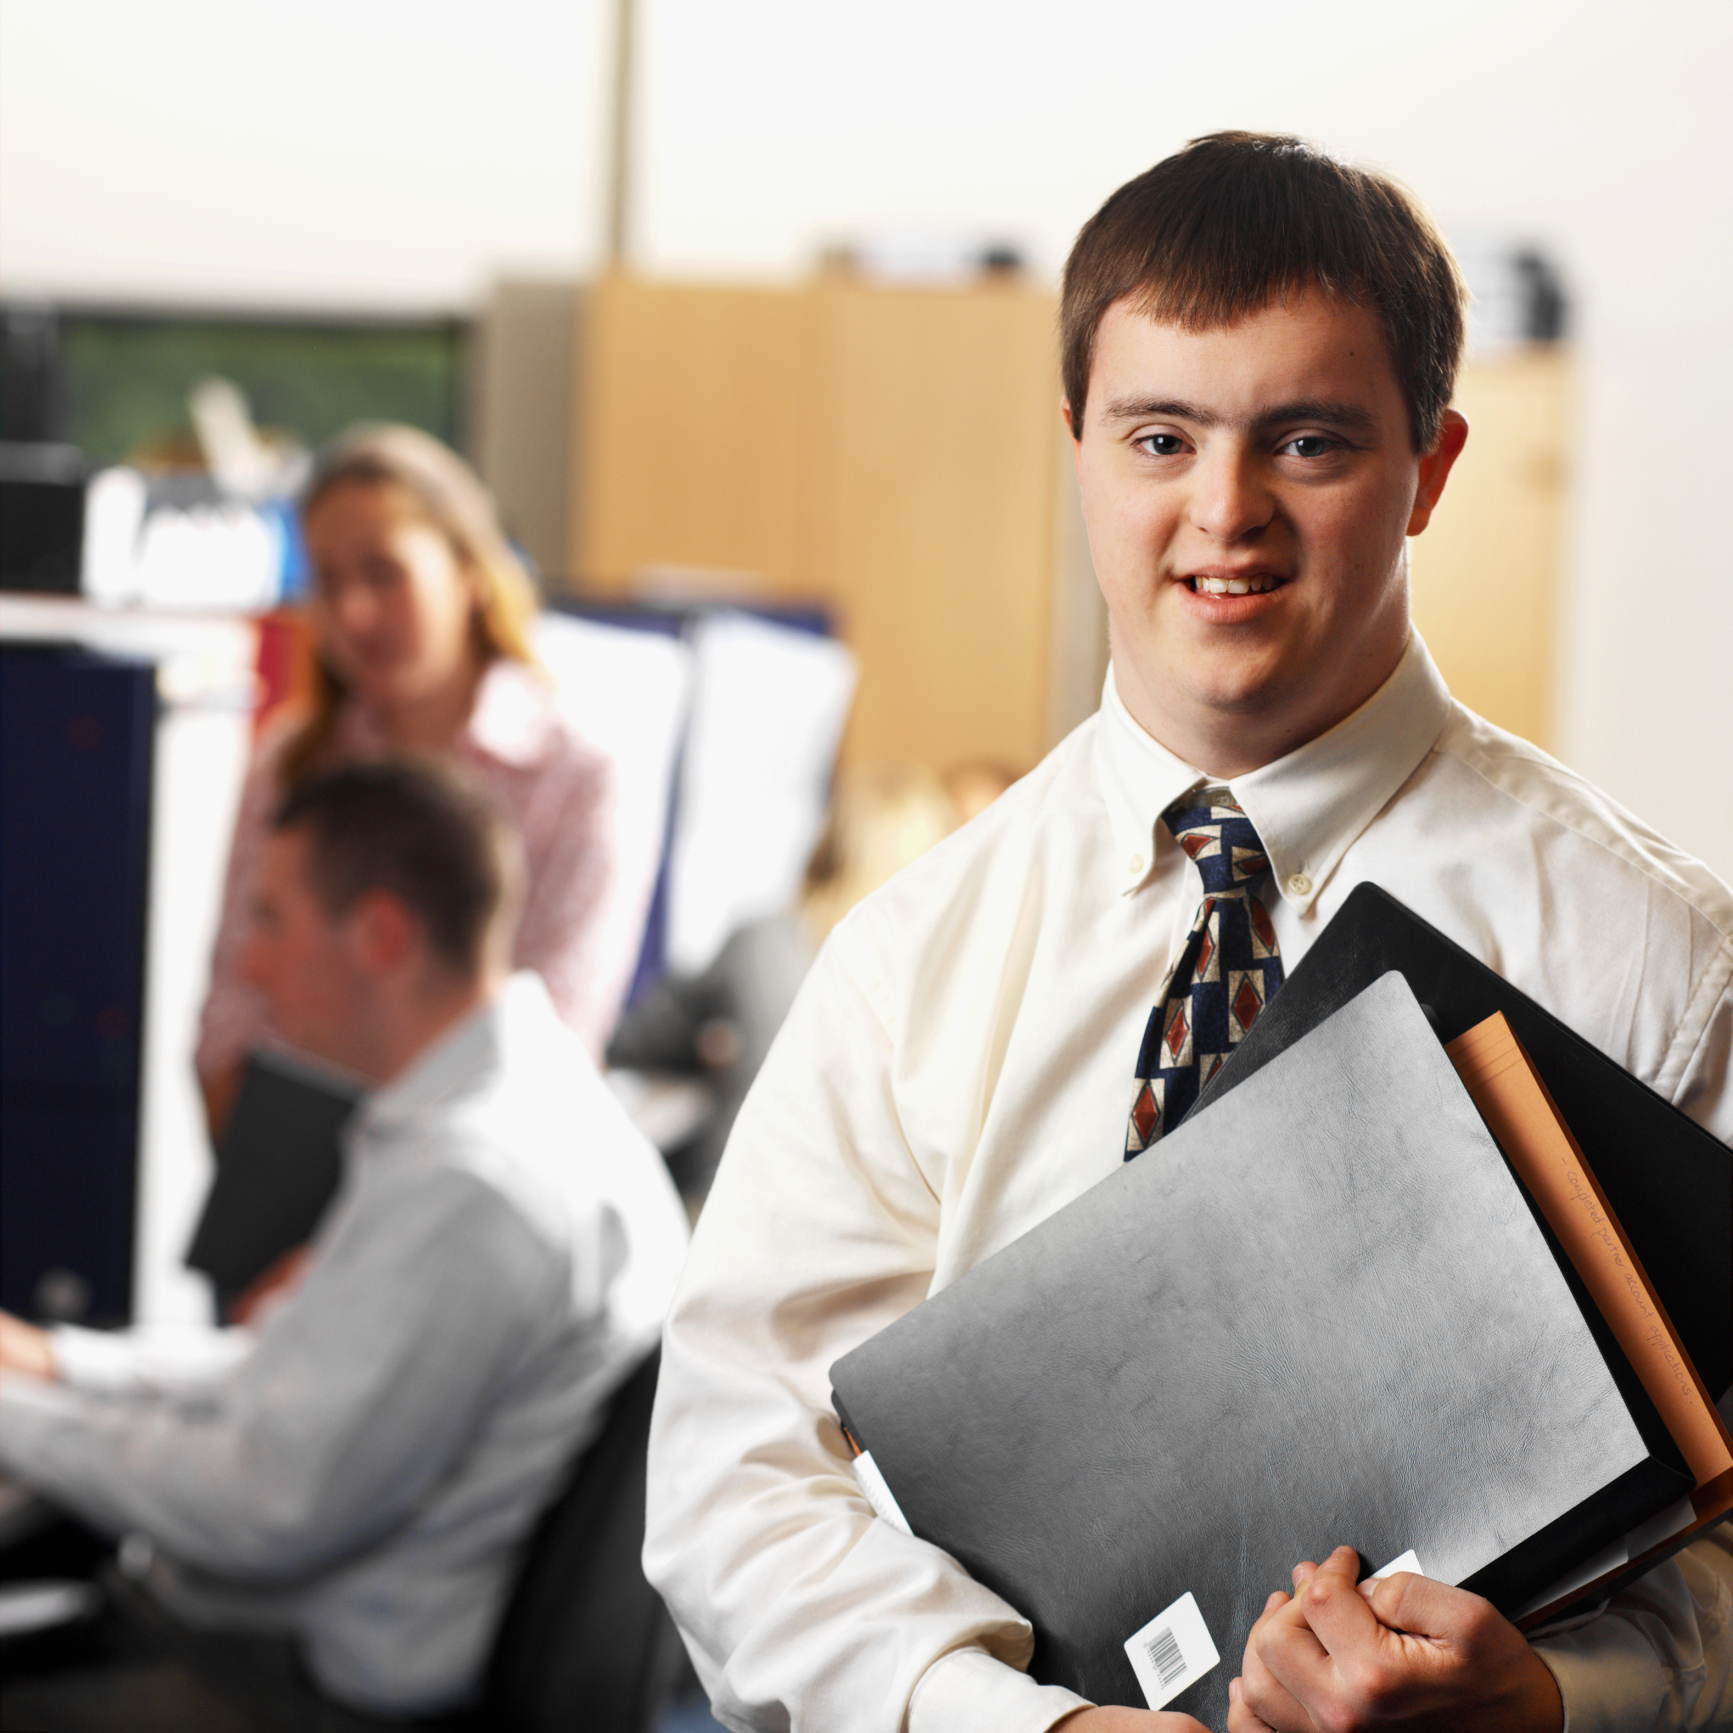 portrait of a man with down syndrome working in an office